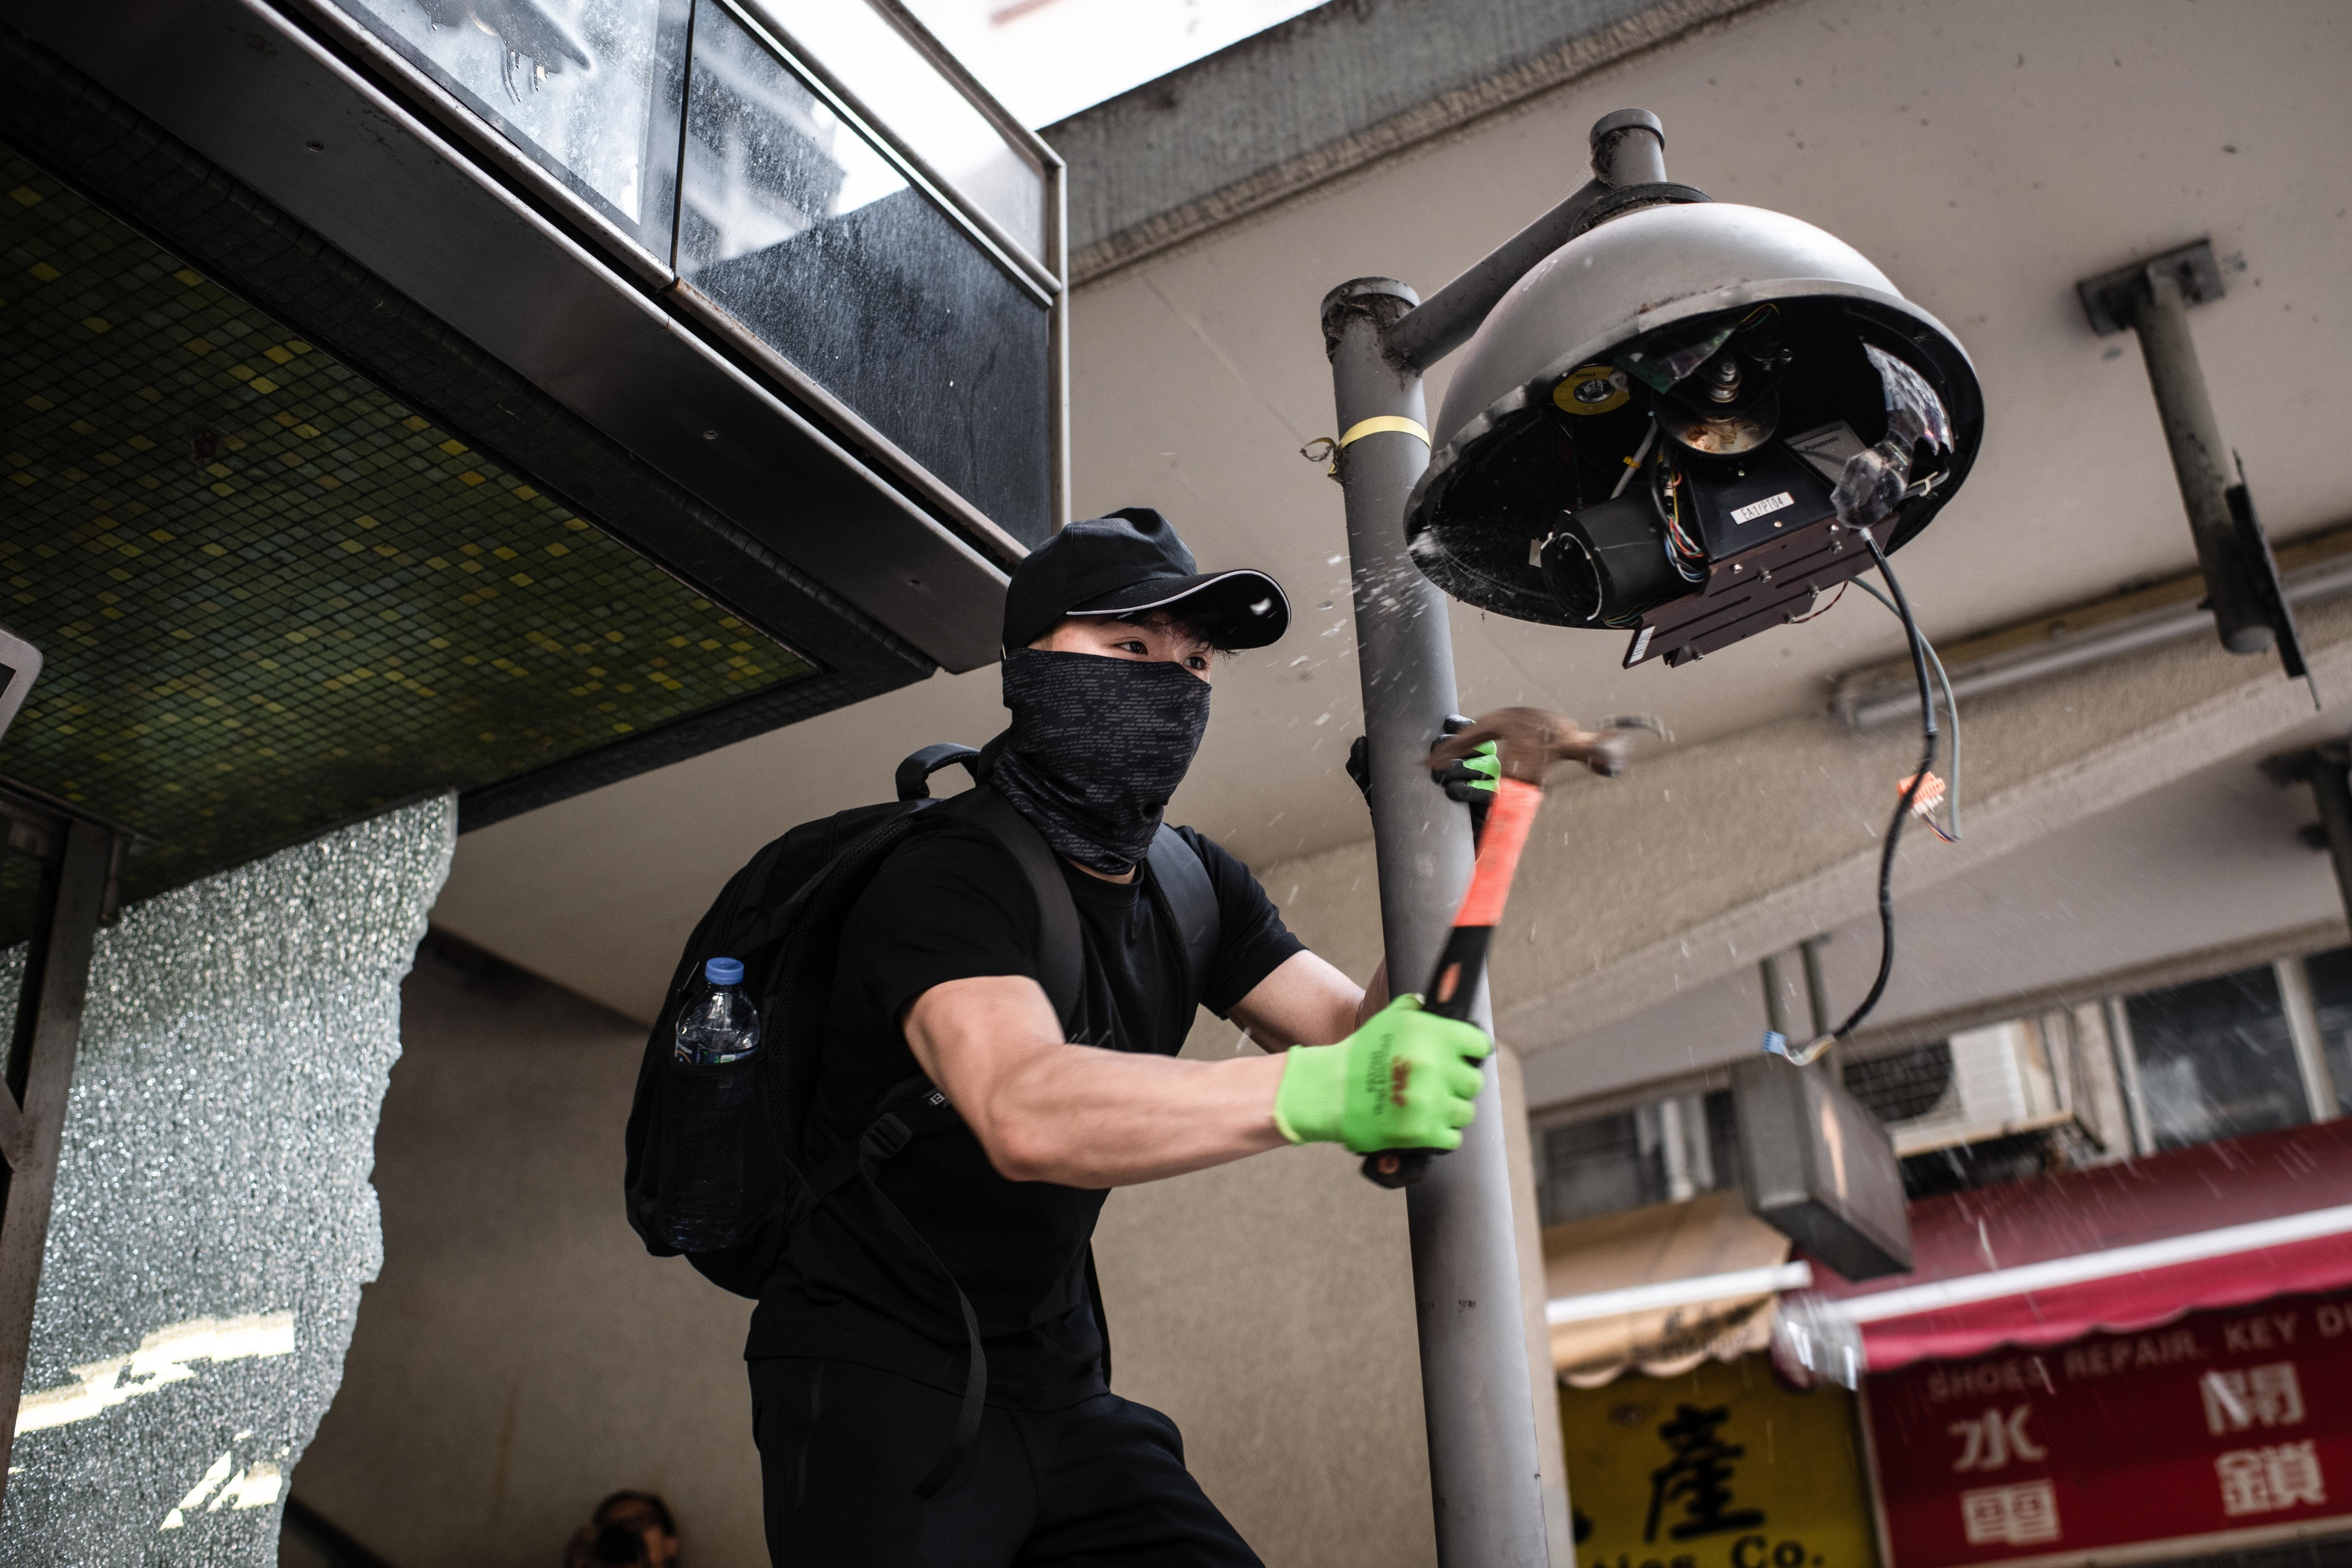 A protester destroys a surveillance camera in Hong Kong.